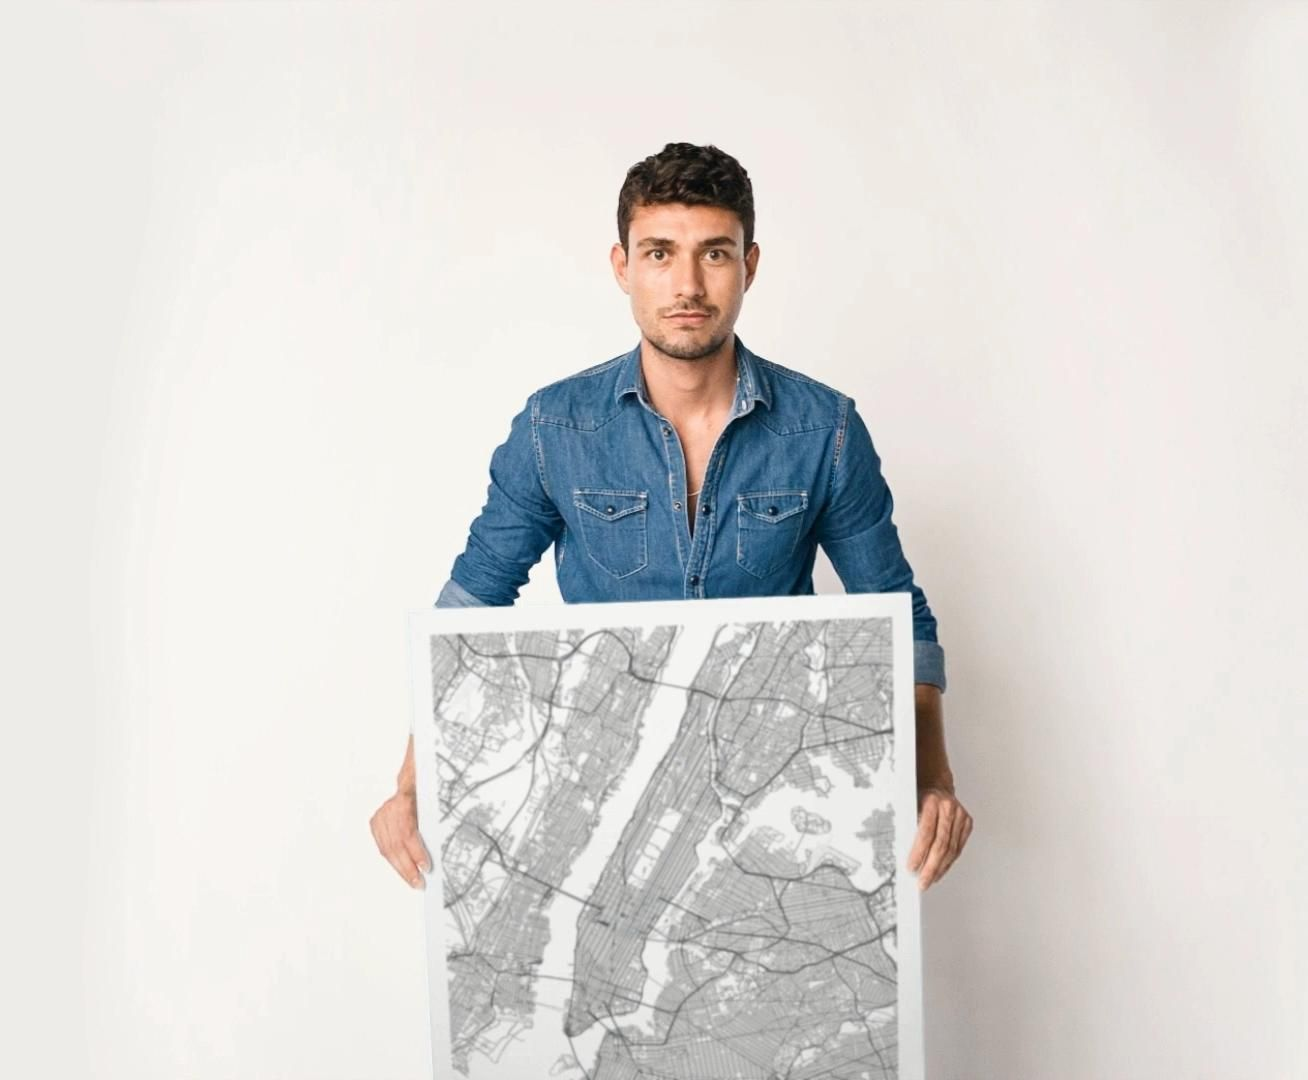 City Map Prints, Choose From Over 1000 Cities, Premium Quality prints